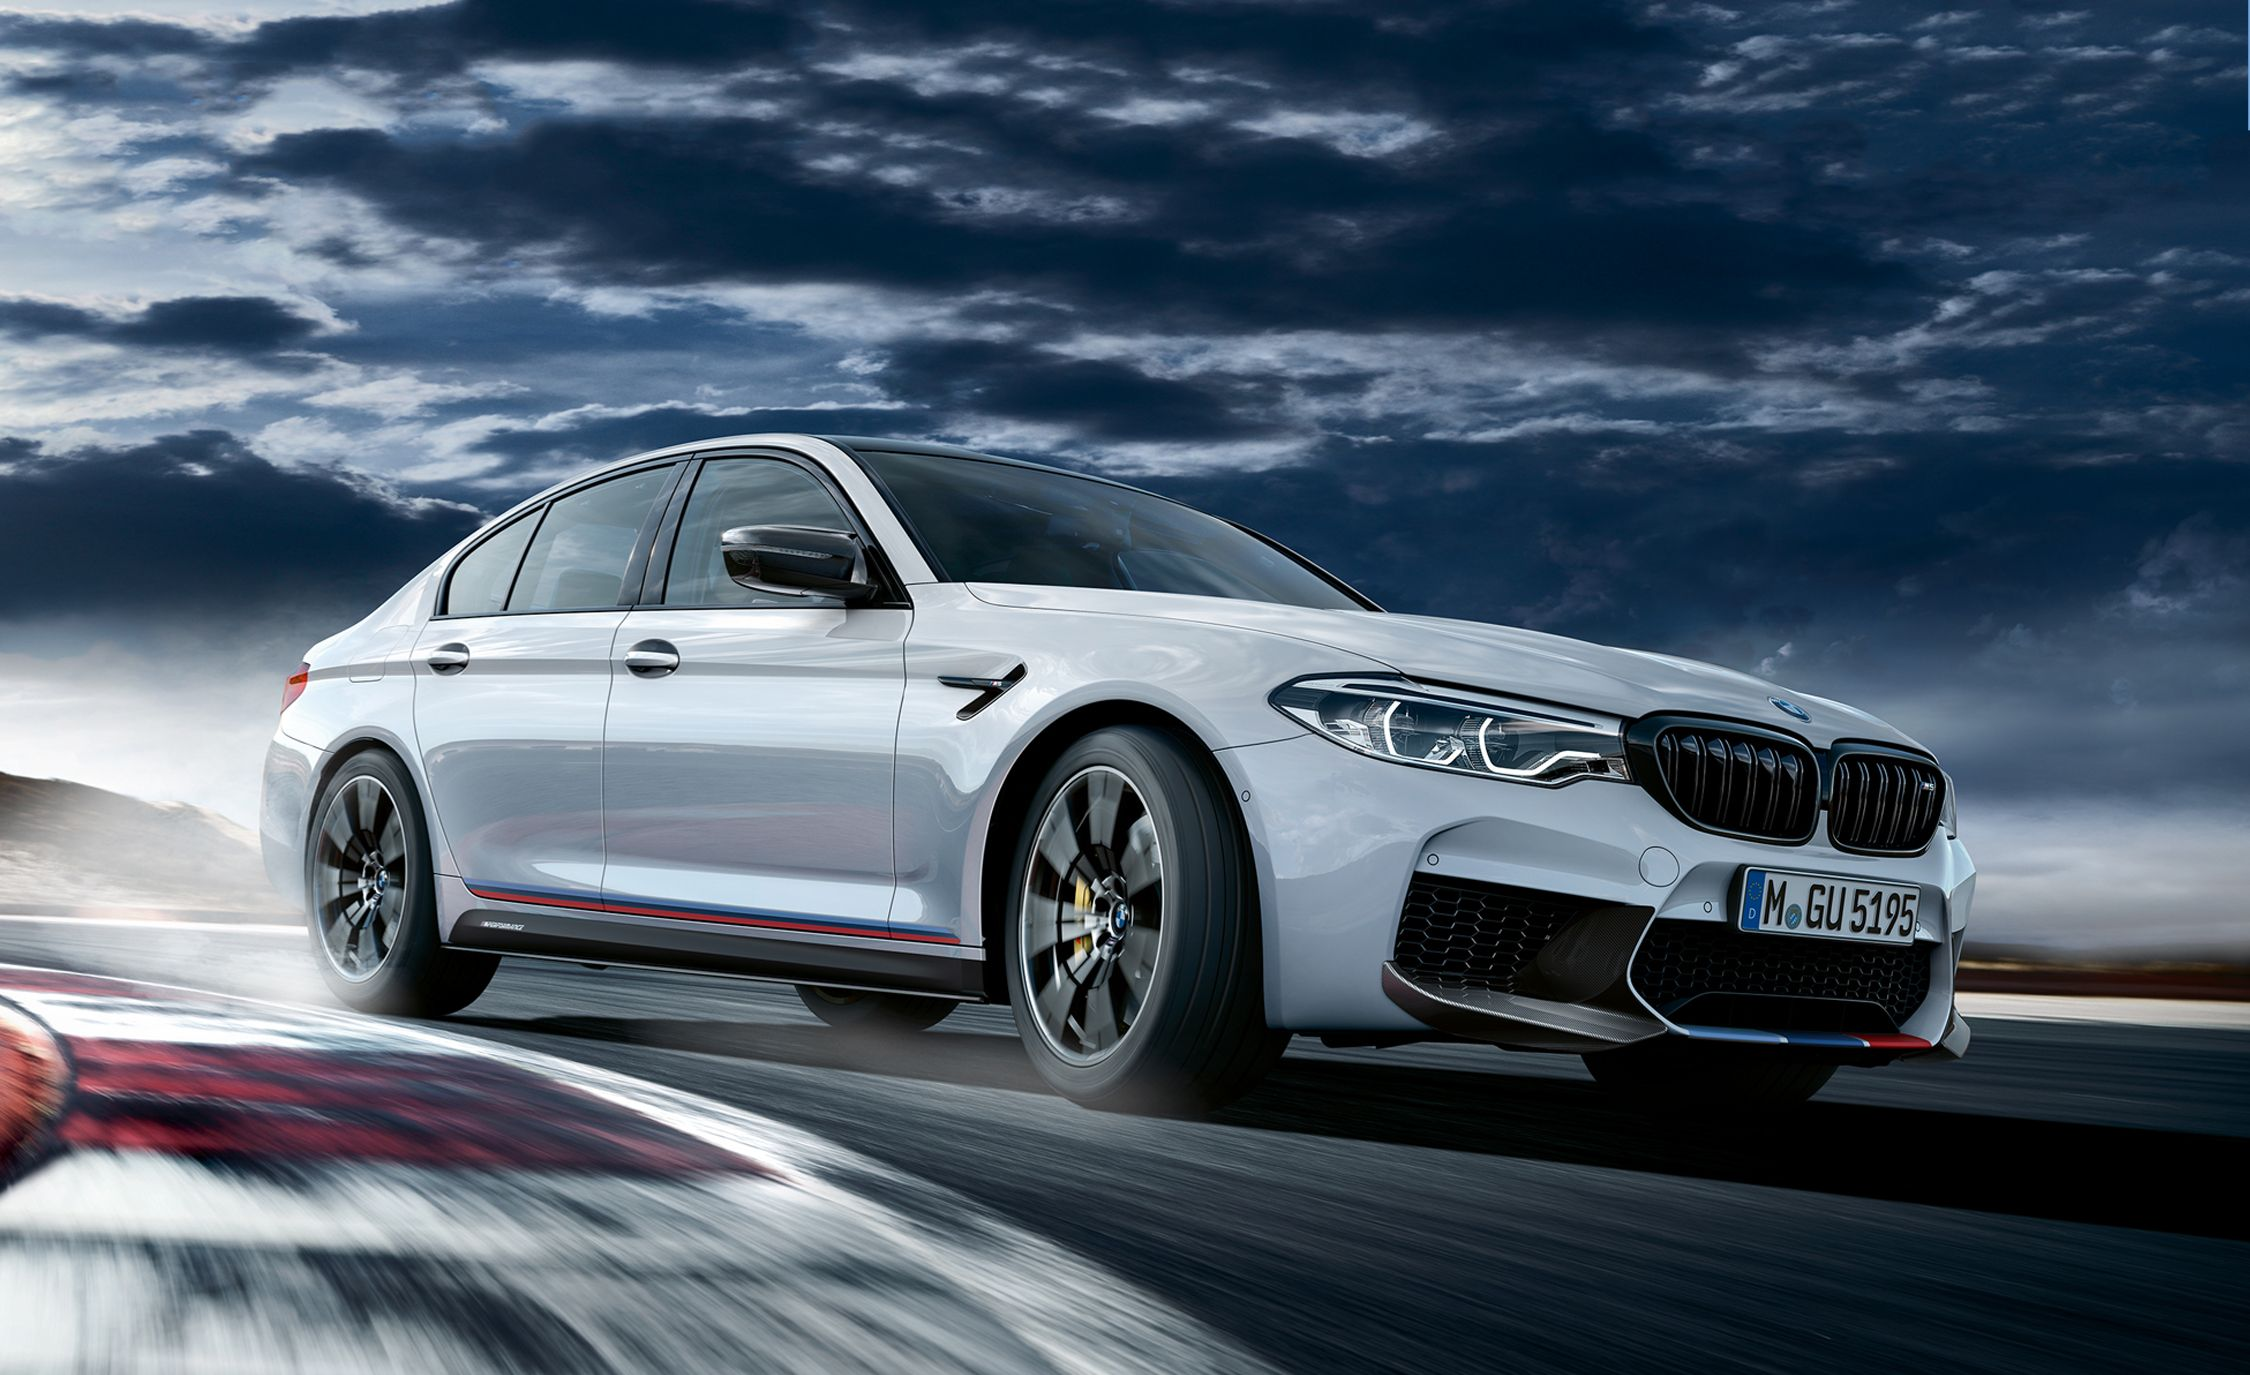 2019 BMW M5 Competition Photo Gallery